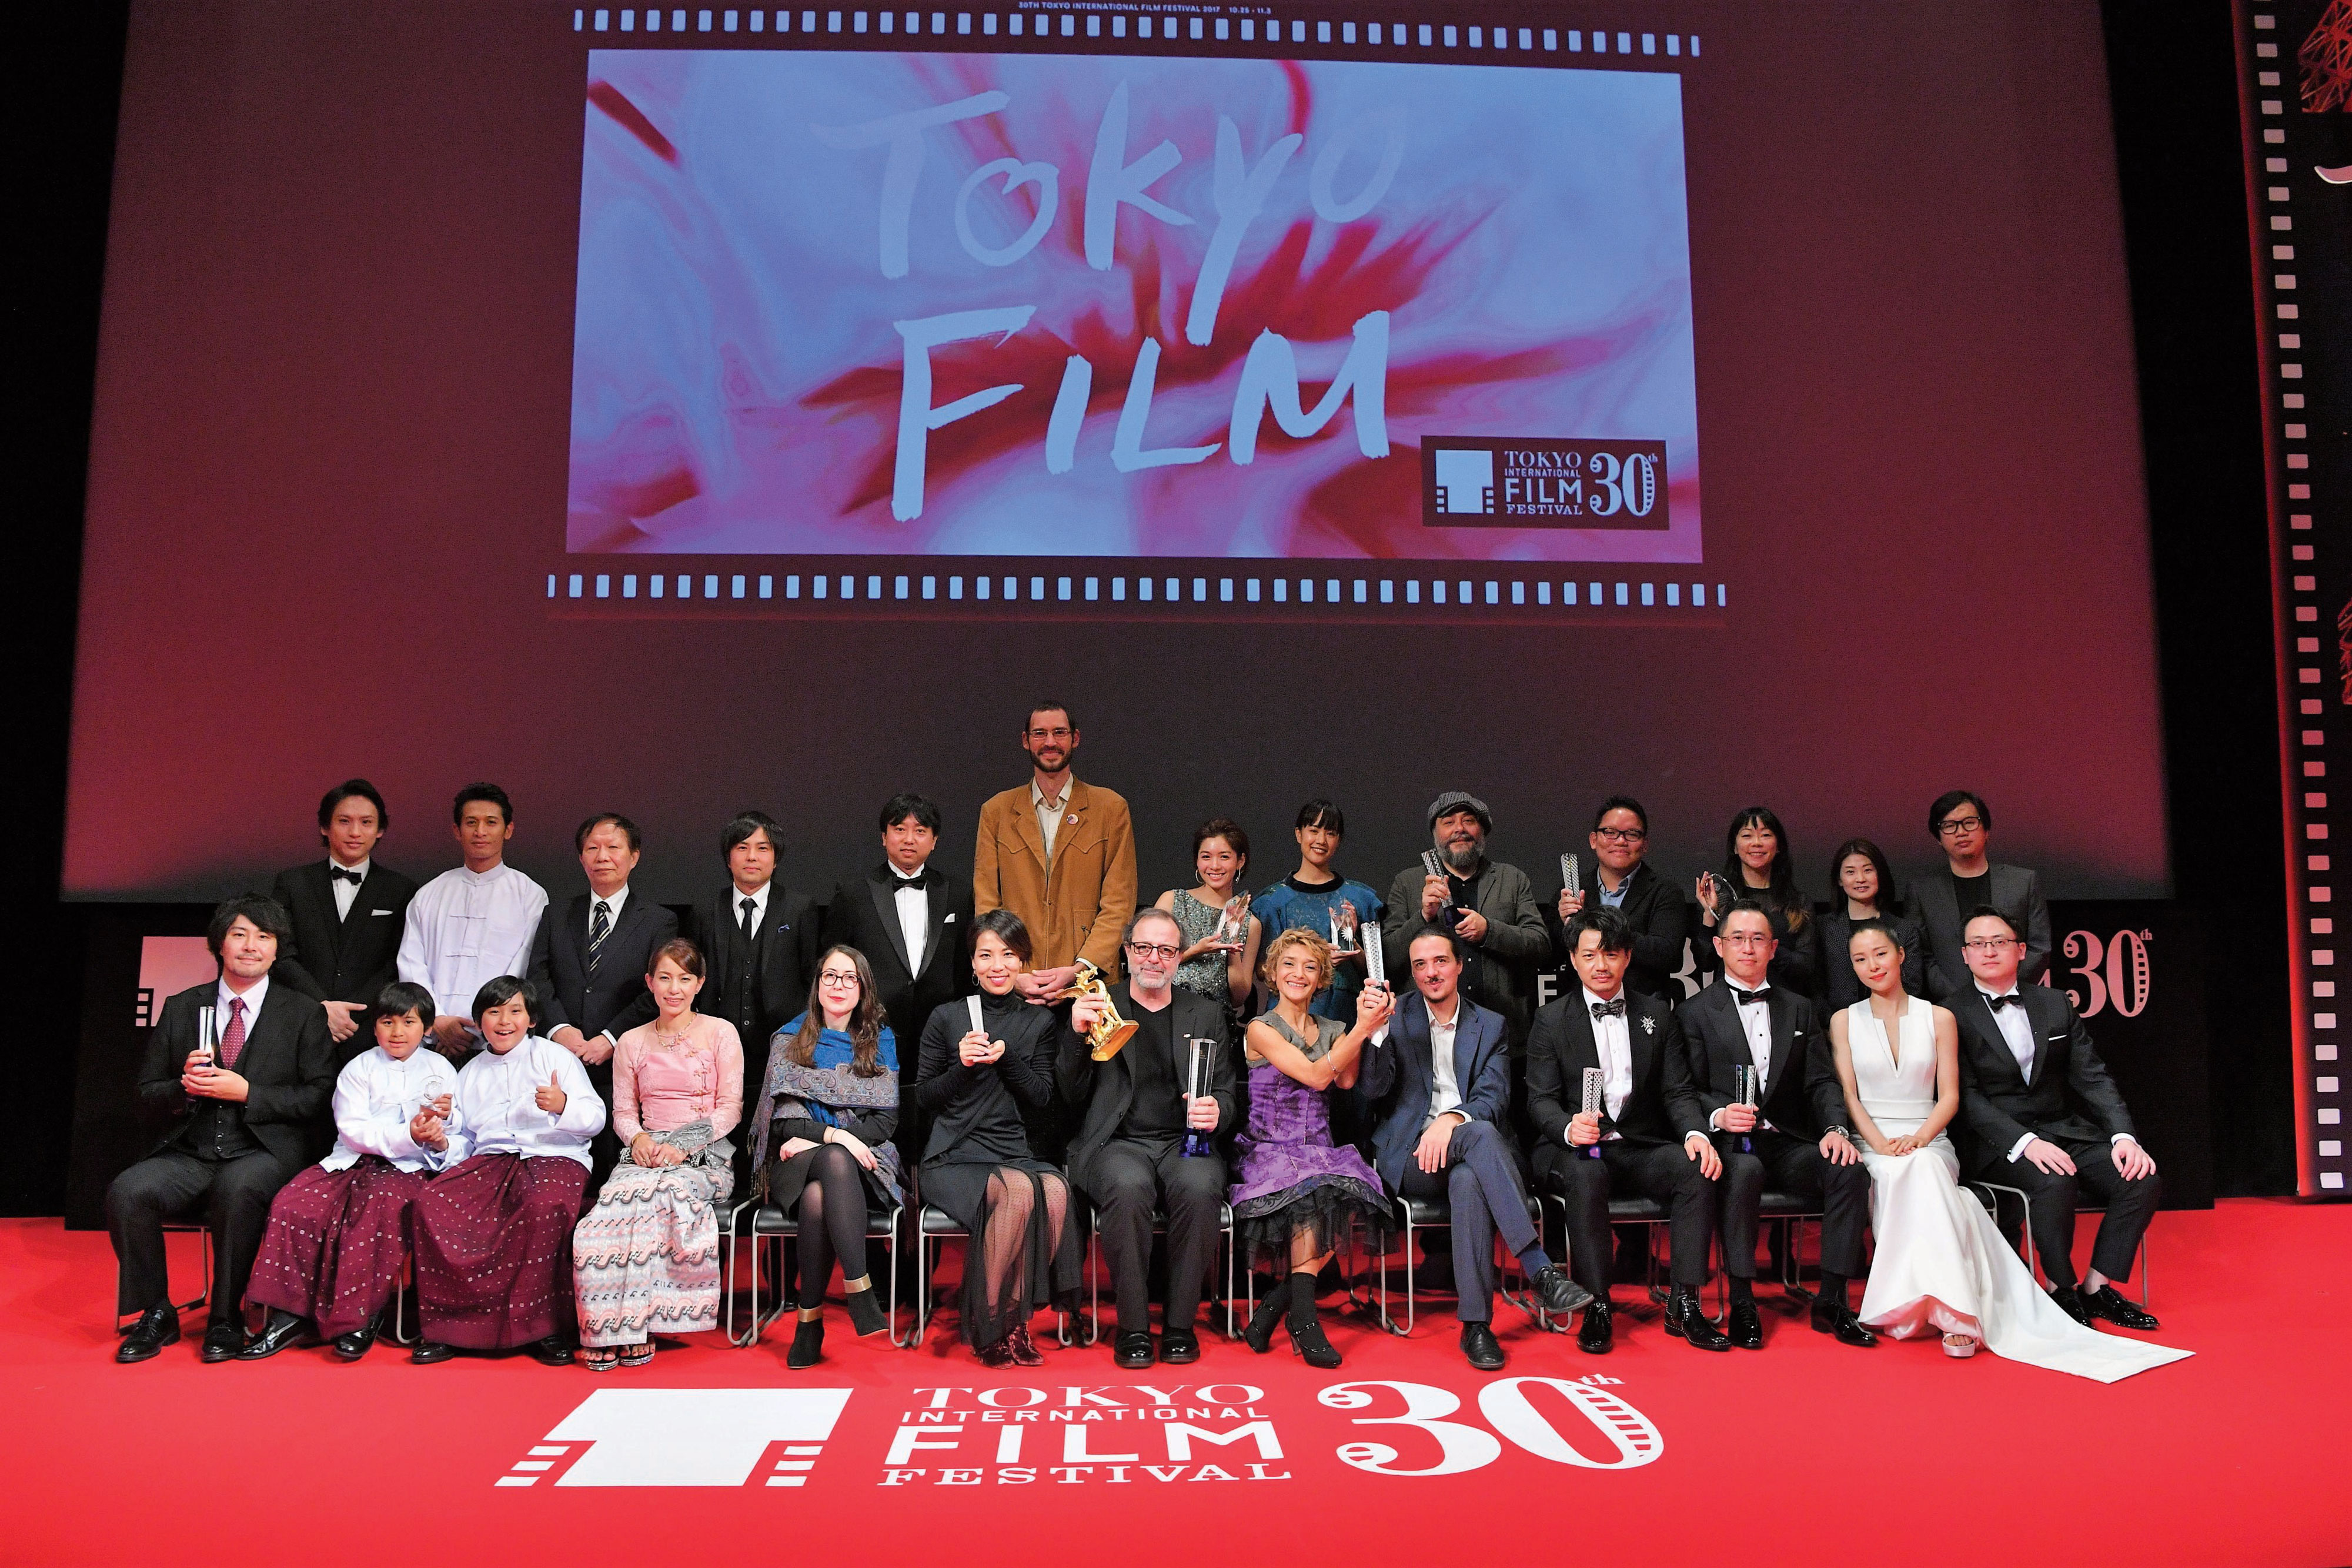 The winners were announced at the closing ceremony on the festival's final day. (Photo from https://prw.kyodonews.jp/opn/release/201711087727/?images)